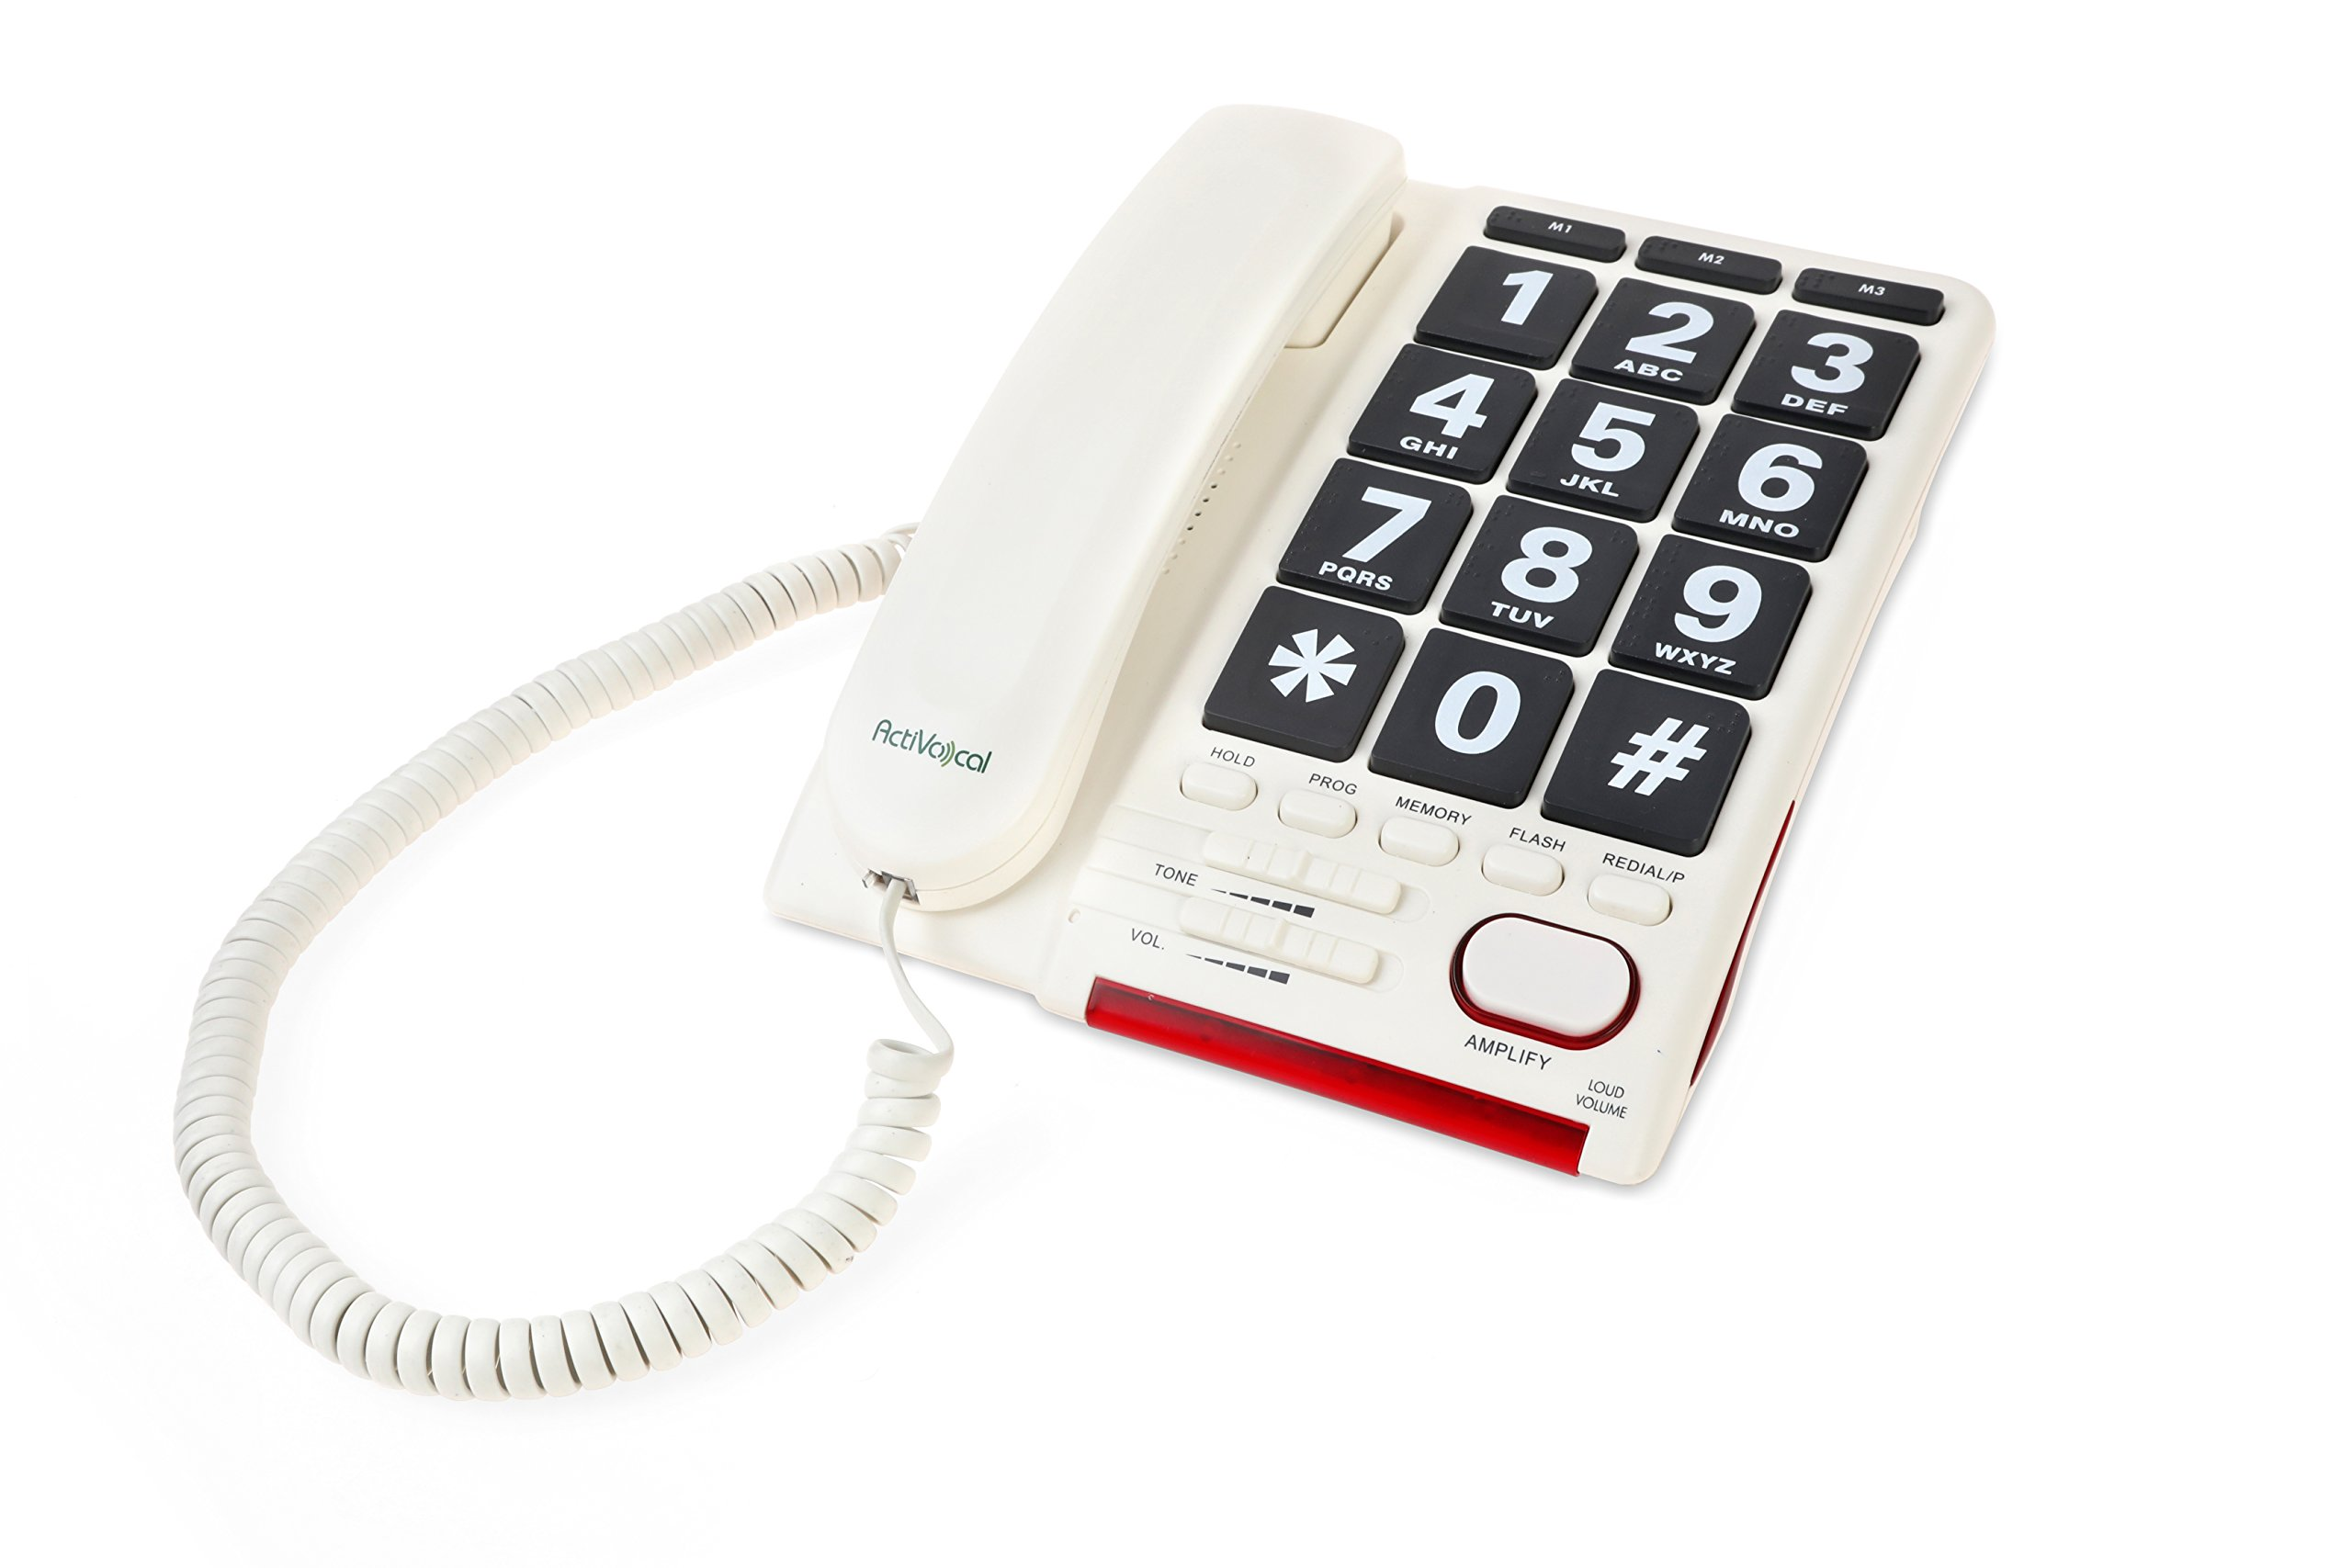 AmpliTalk 100 - the World's First Amplified, Voice Dialer Landline Phone with Braille Keys!